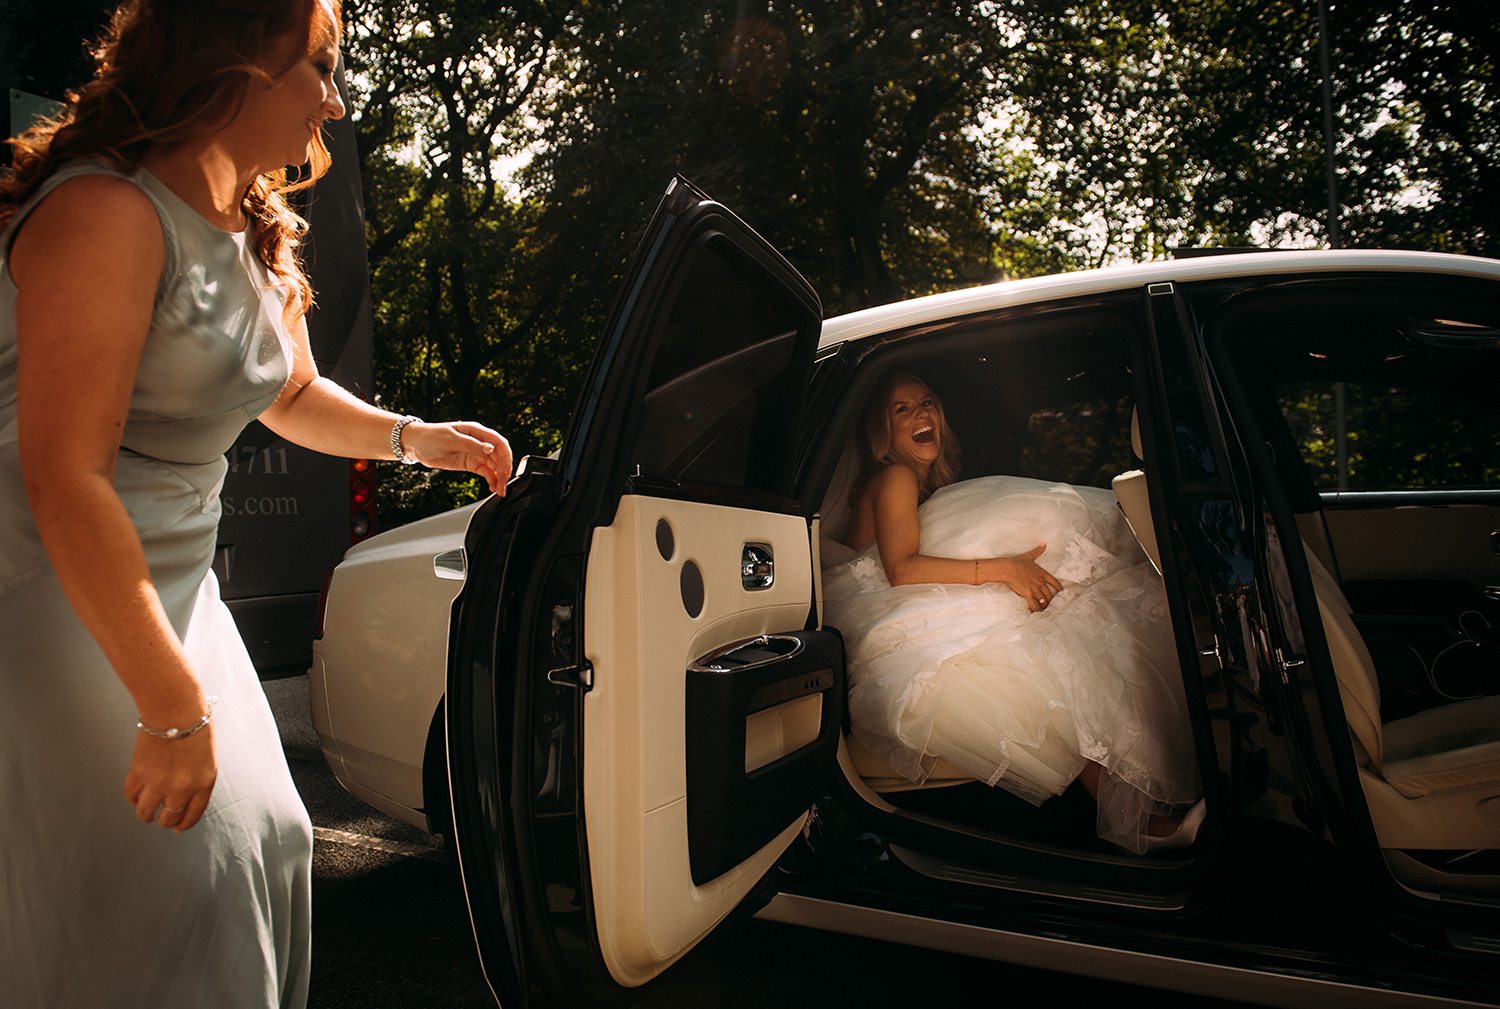 brides sister helping her out of the wedding car